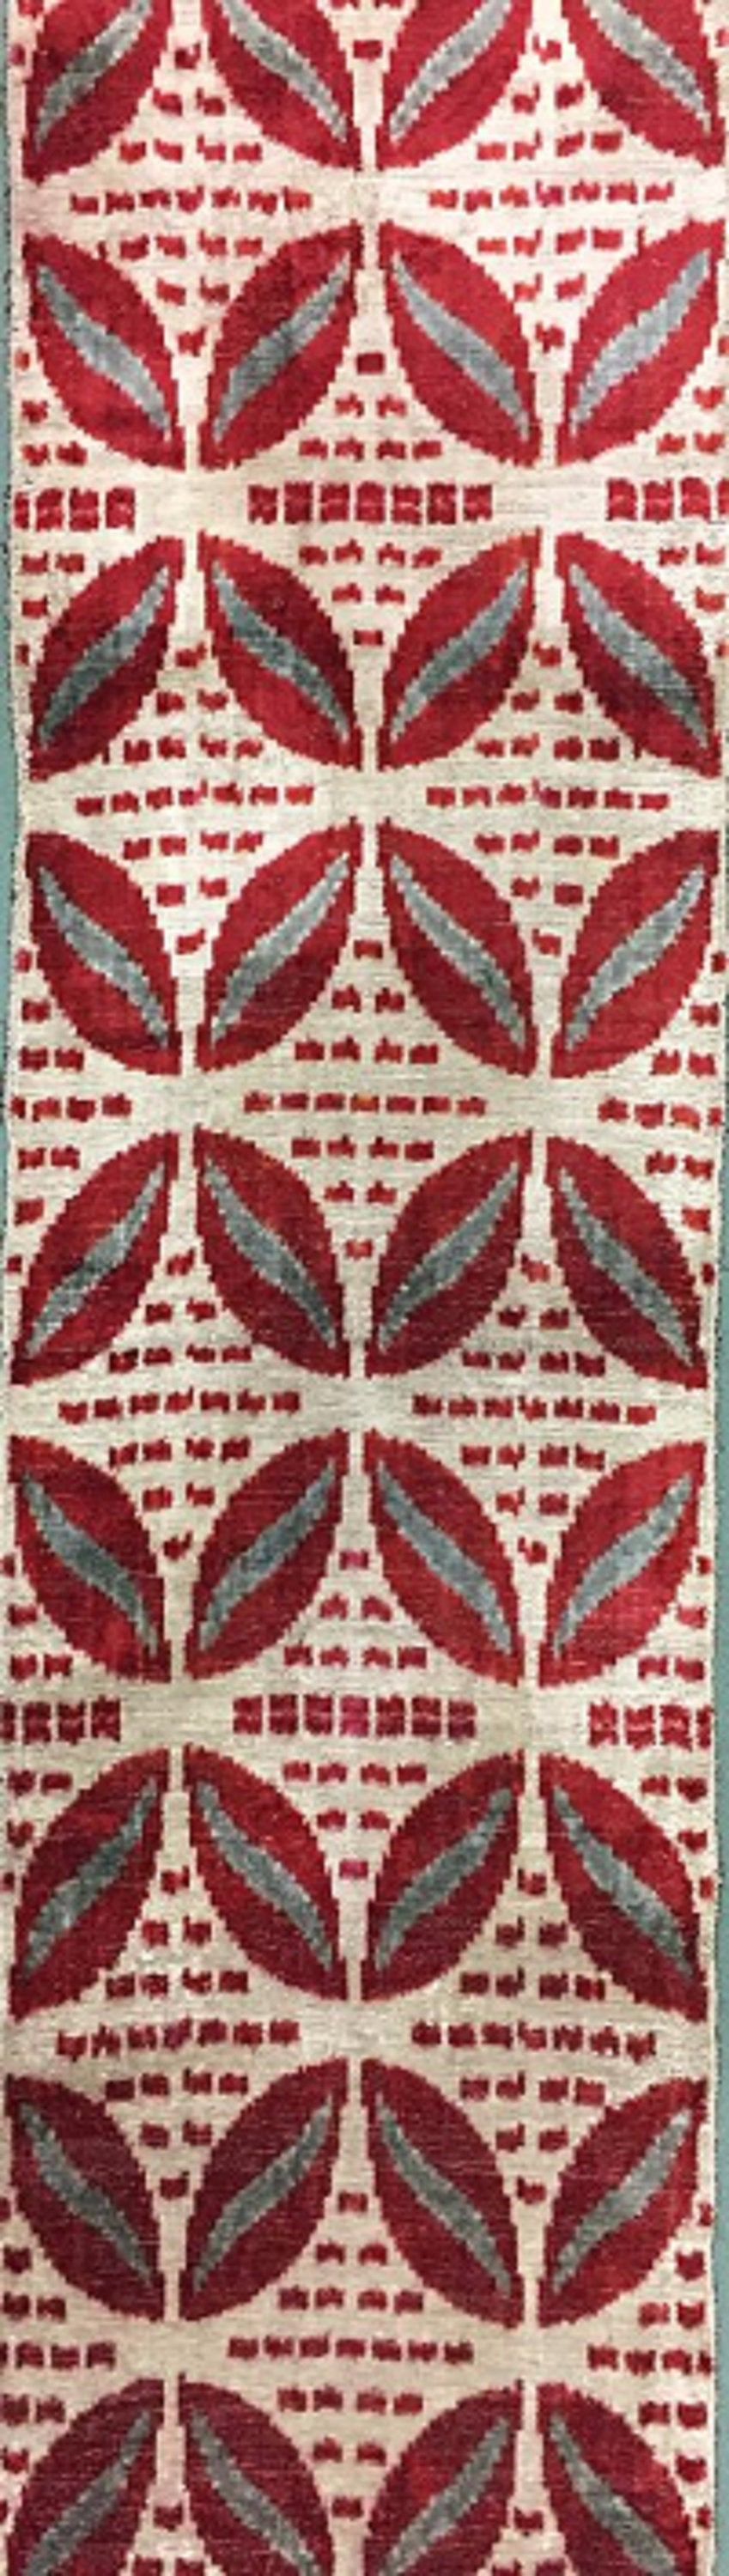 Handmade Silk Ikat Velvet Fabric,Decorative Fabric